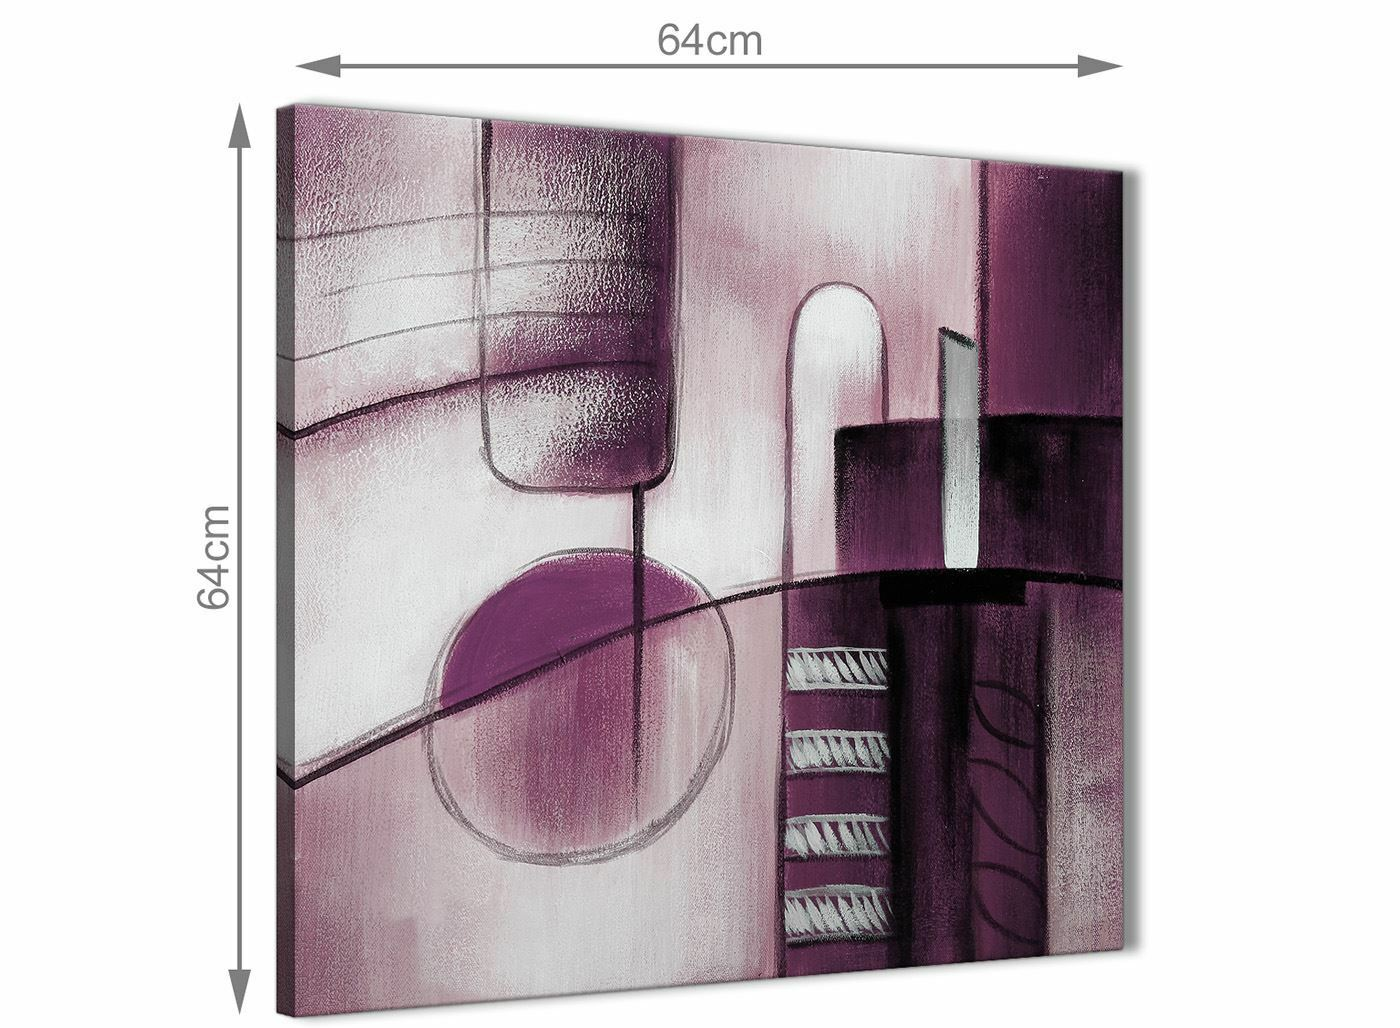 Plum grau Painting Hallway Canvas Pictures Decor Decor Decor - Abstract 1s420m - 64cm f130d1